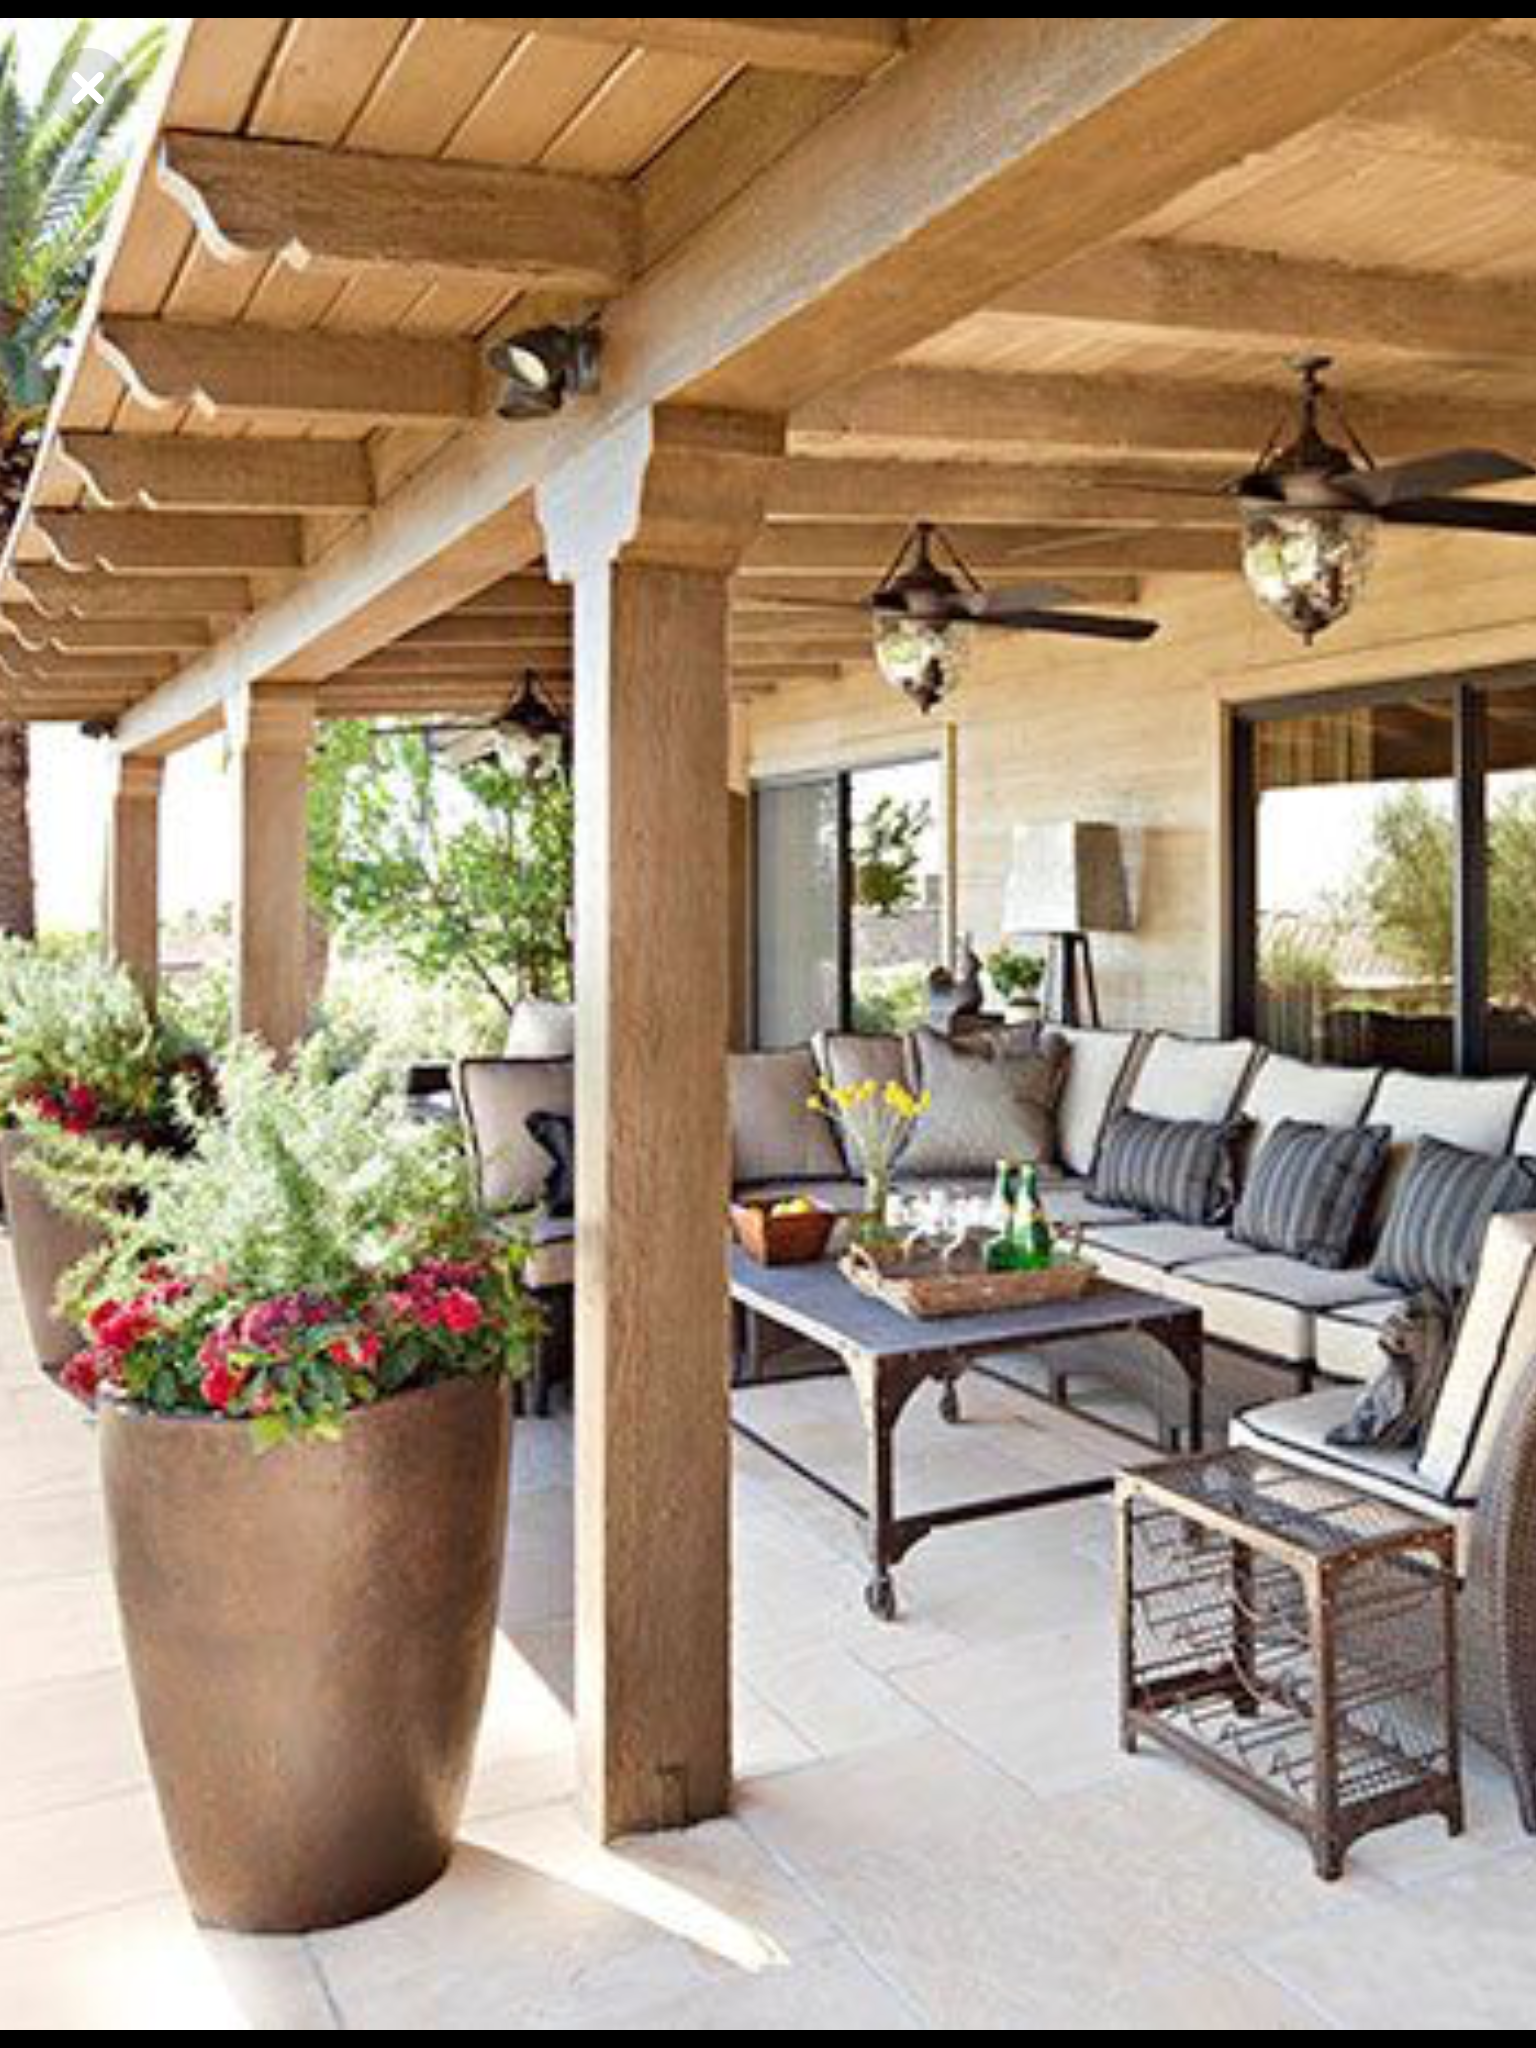 Love These Planters And Plants Patio Design Patio Budget Patio